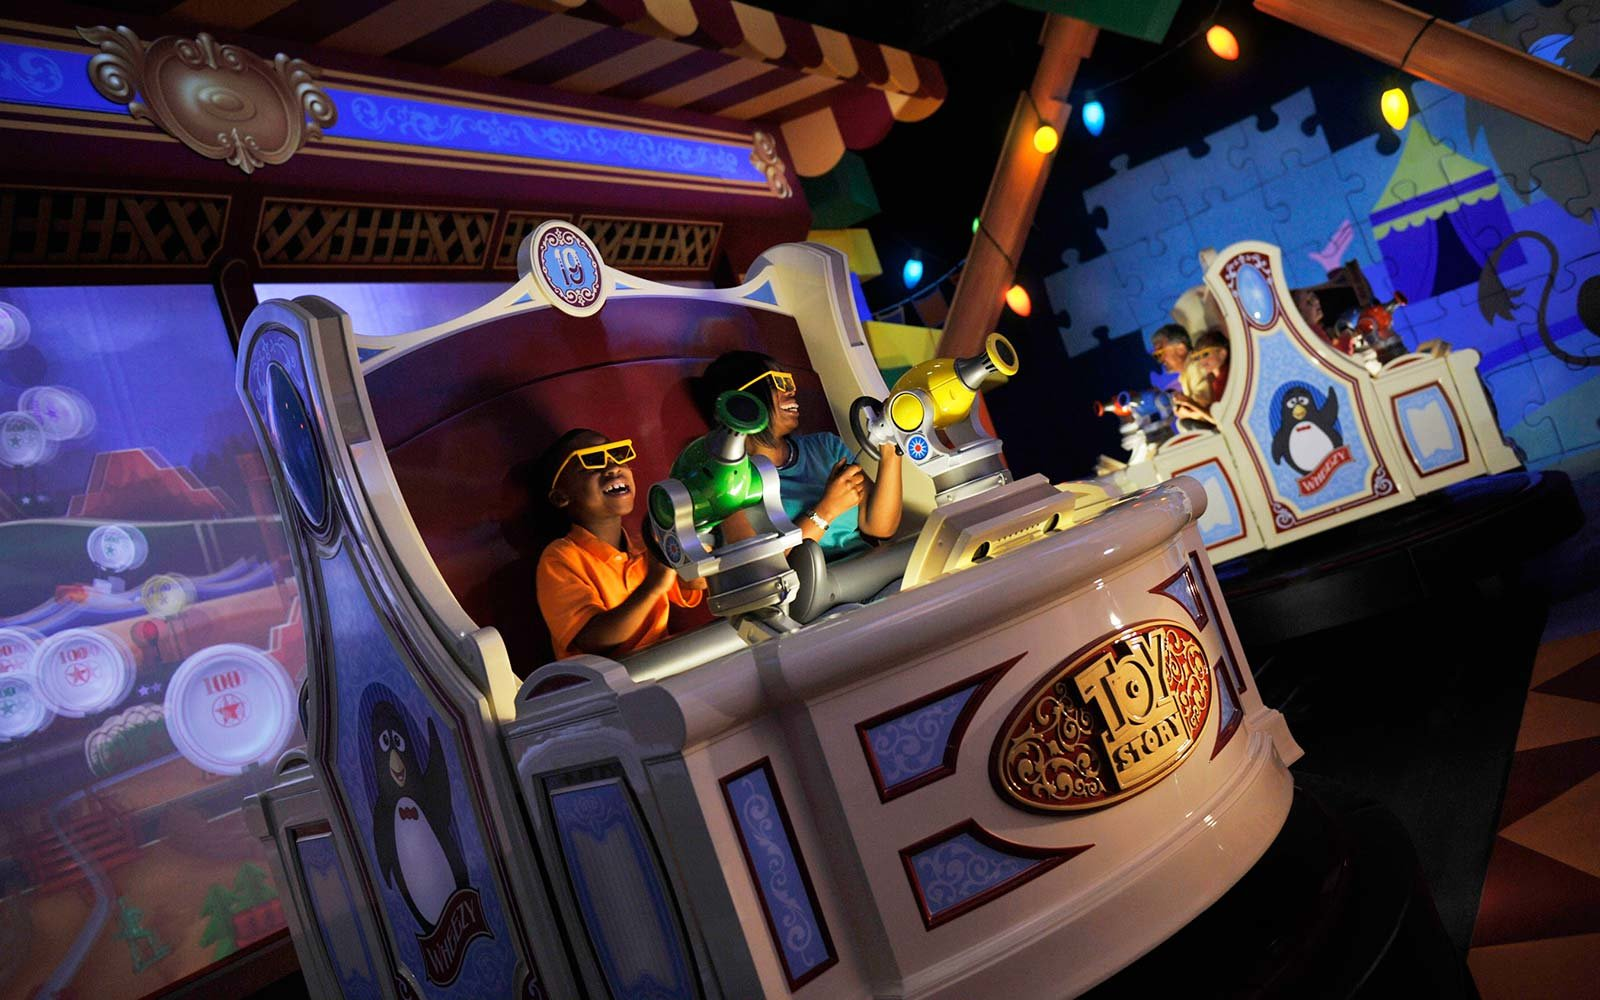 6. Toy Story Mania!